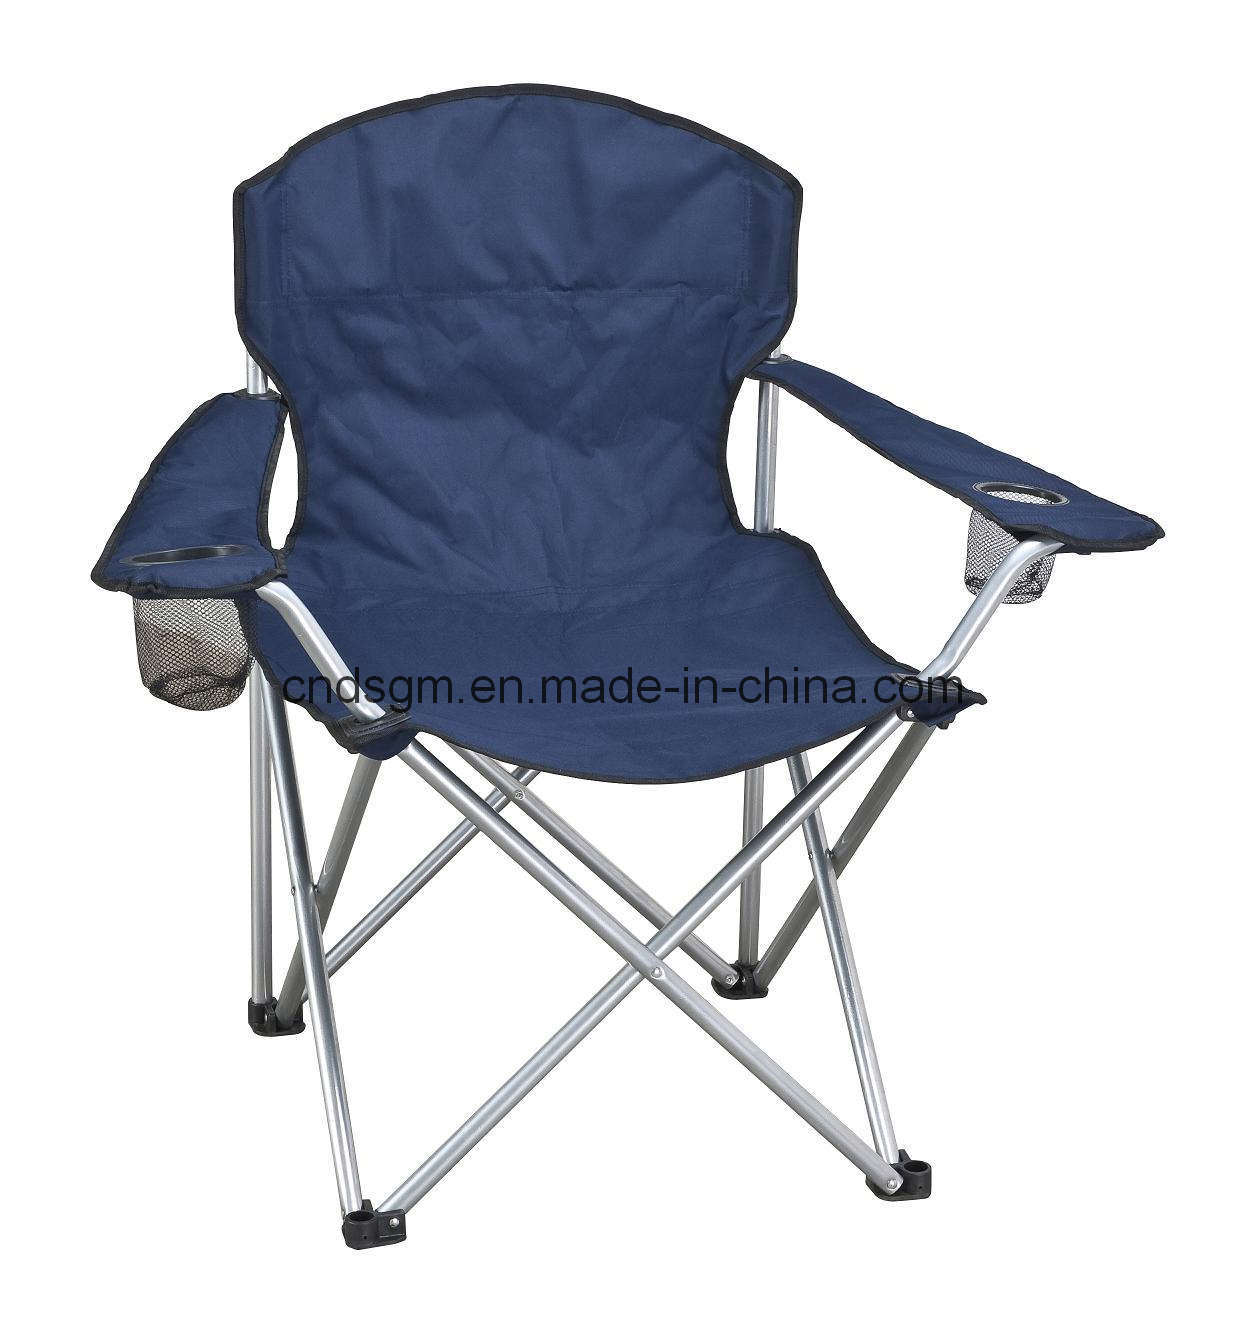 China Folding Camping Chair s & Made in china